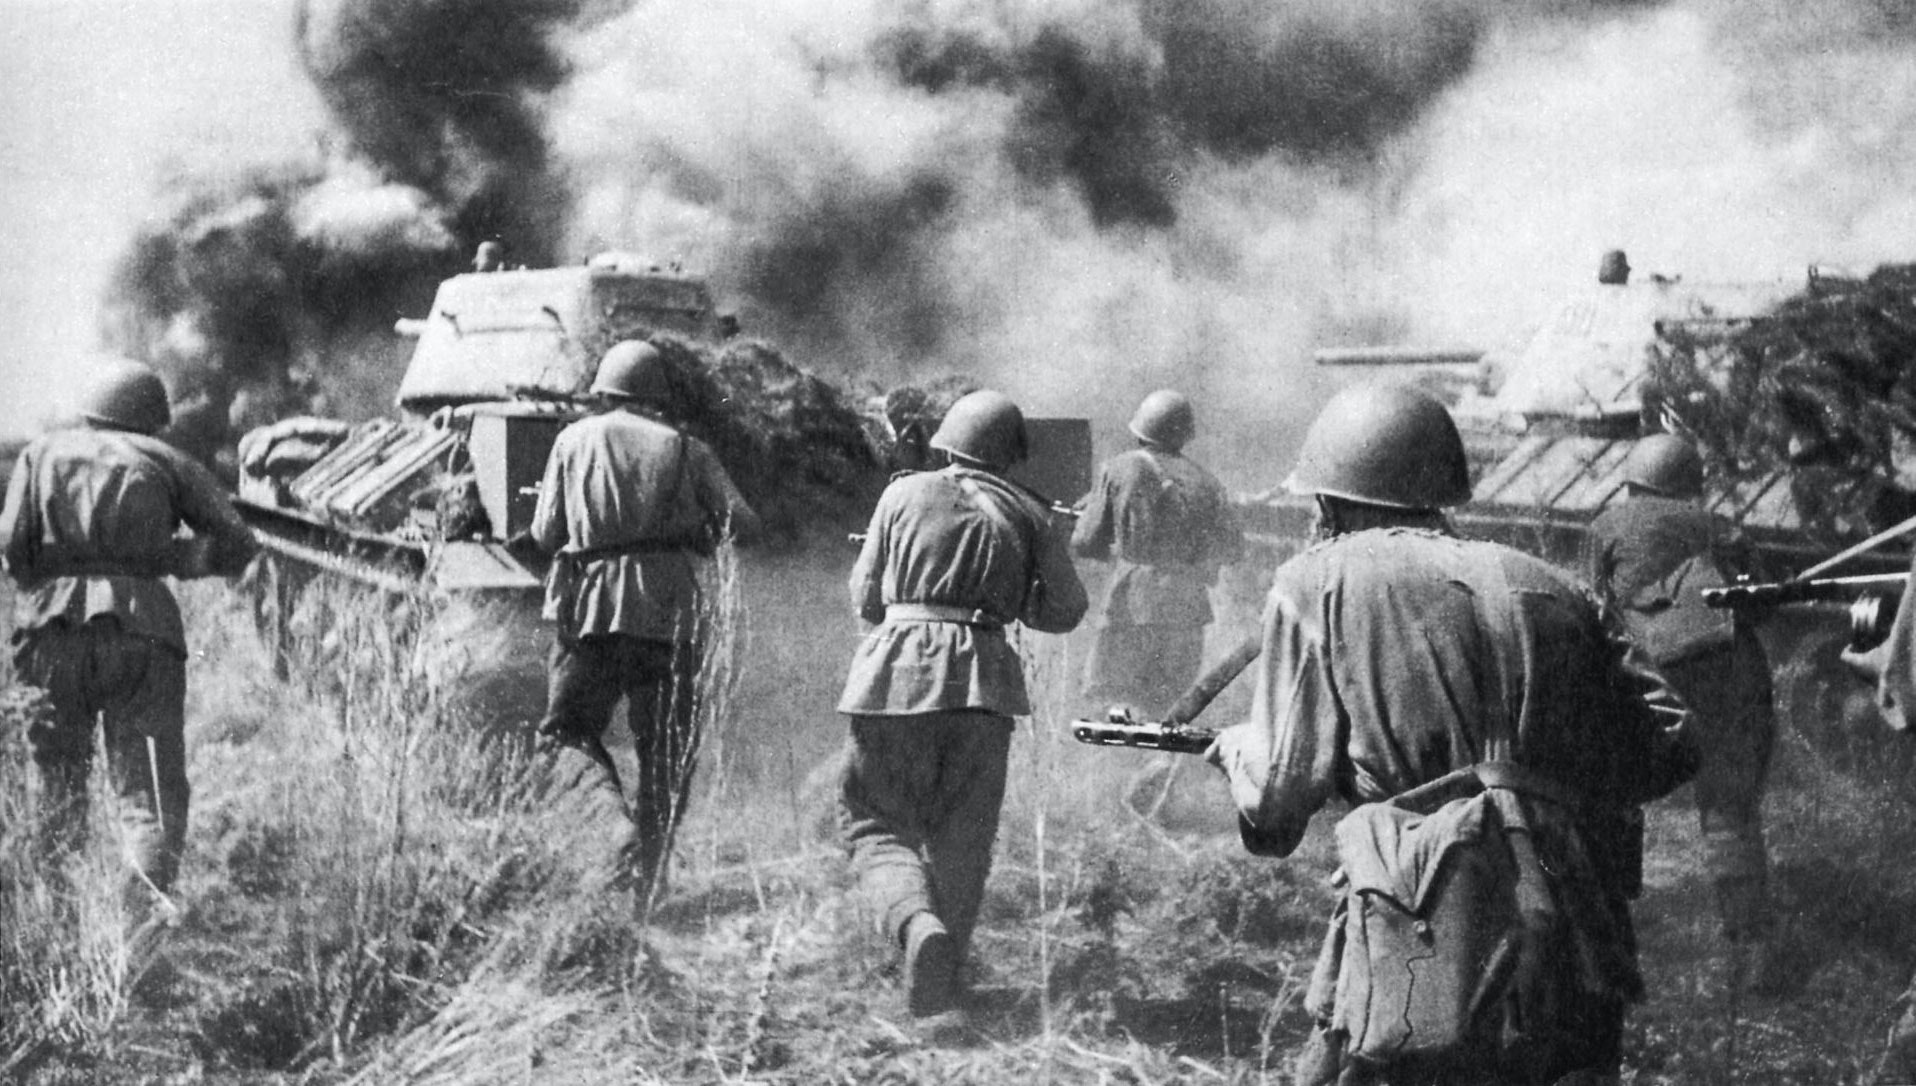 Soviet troops of the Voronezh Front counterattacking behind T-34 tanks at Prokhorovka during the Battle of Kursk